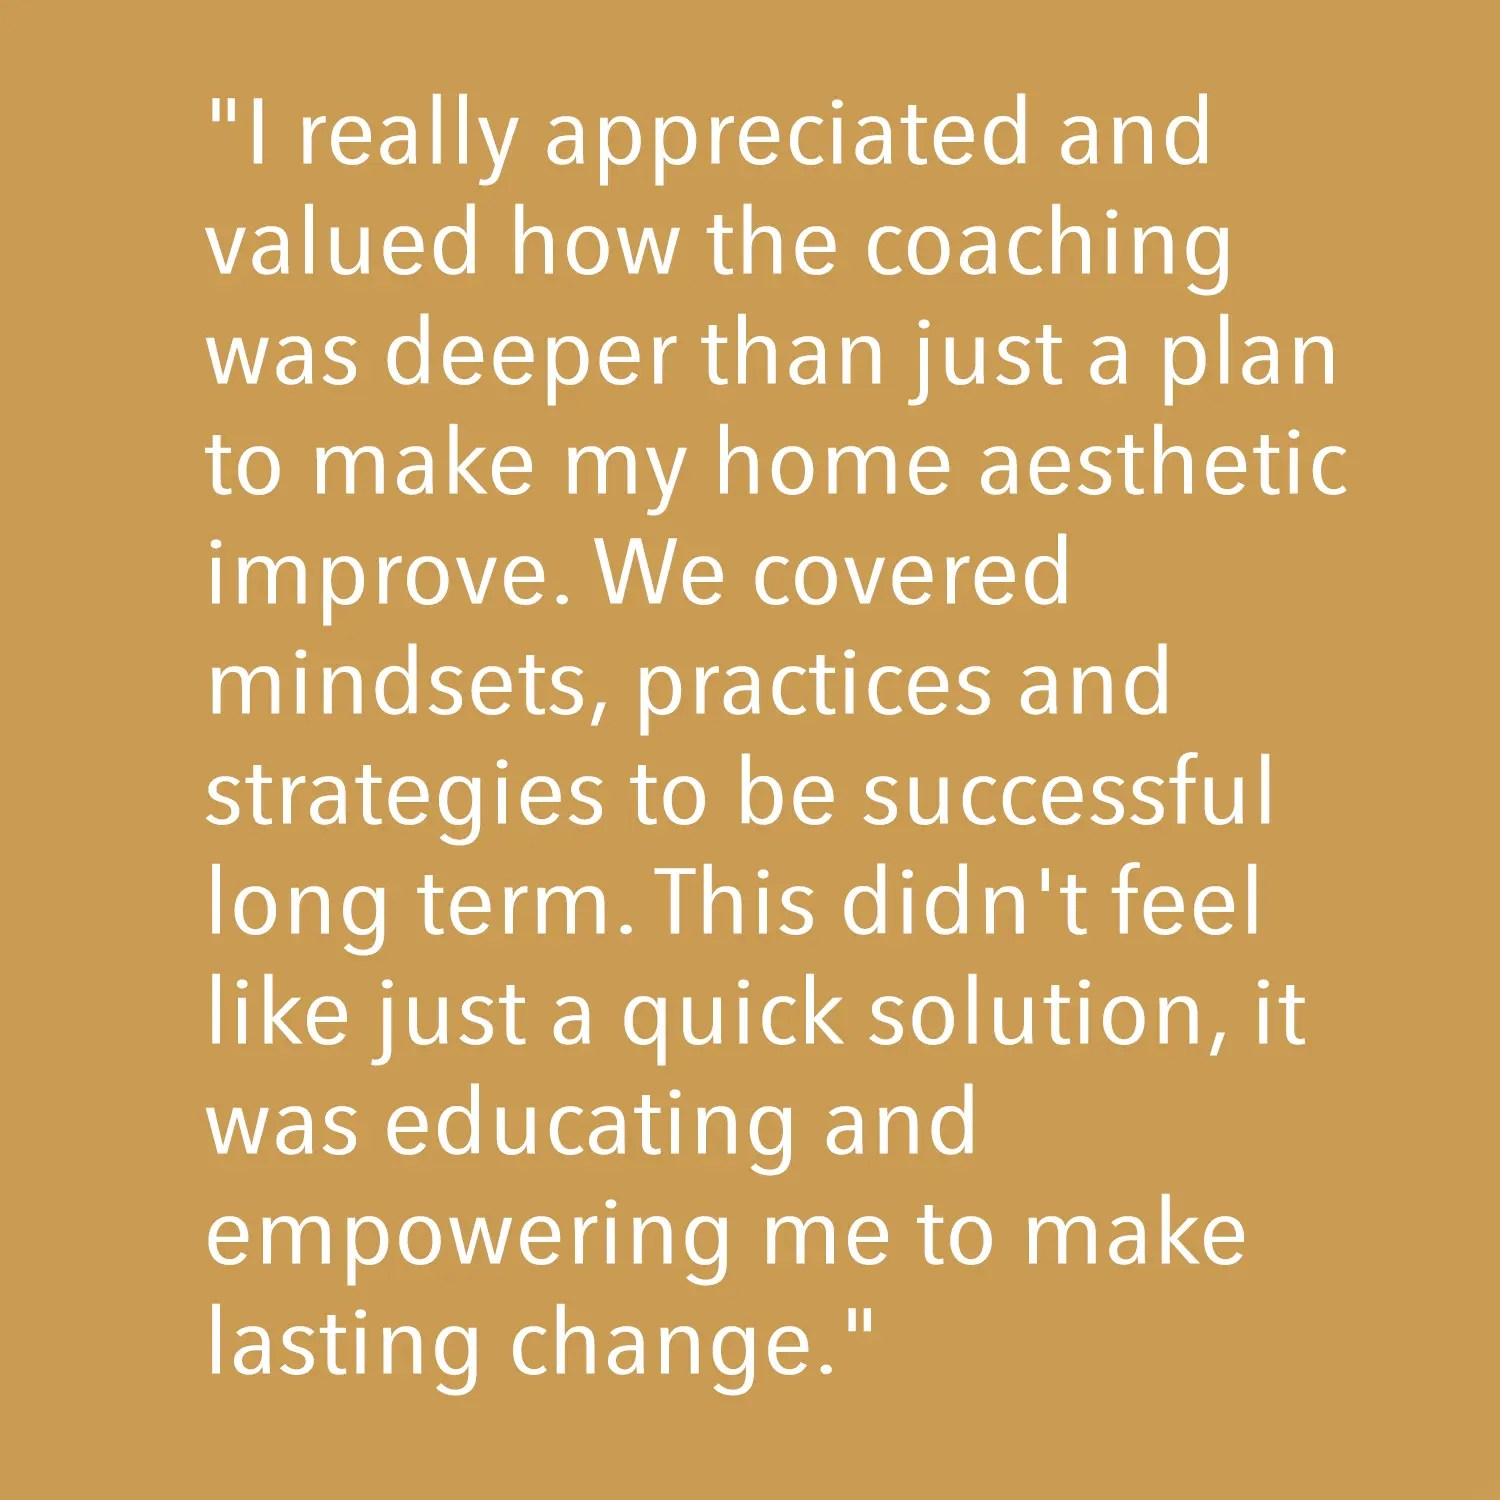 Testimonial - I really appreciated and valued...